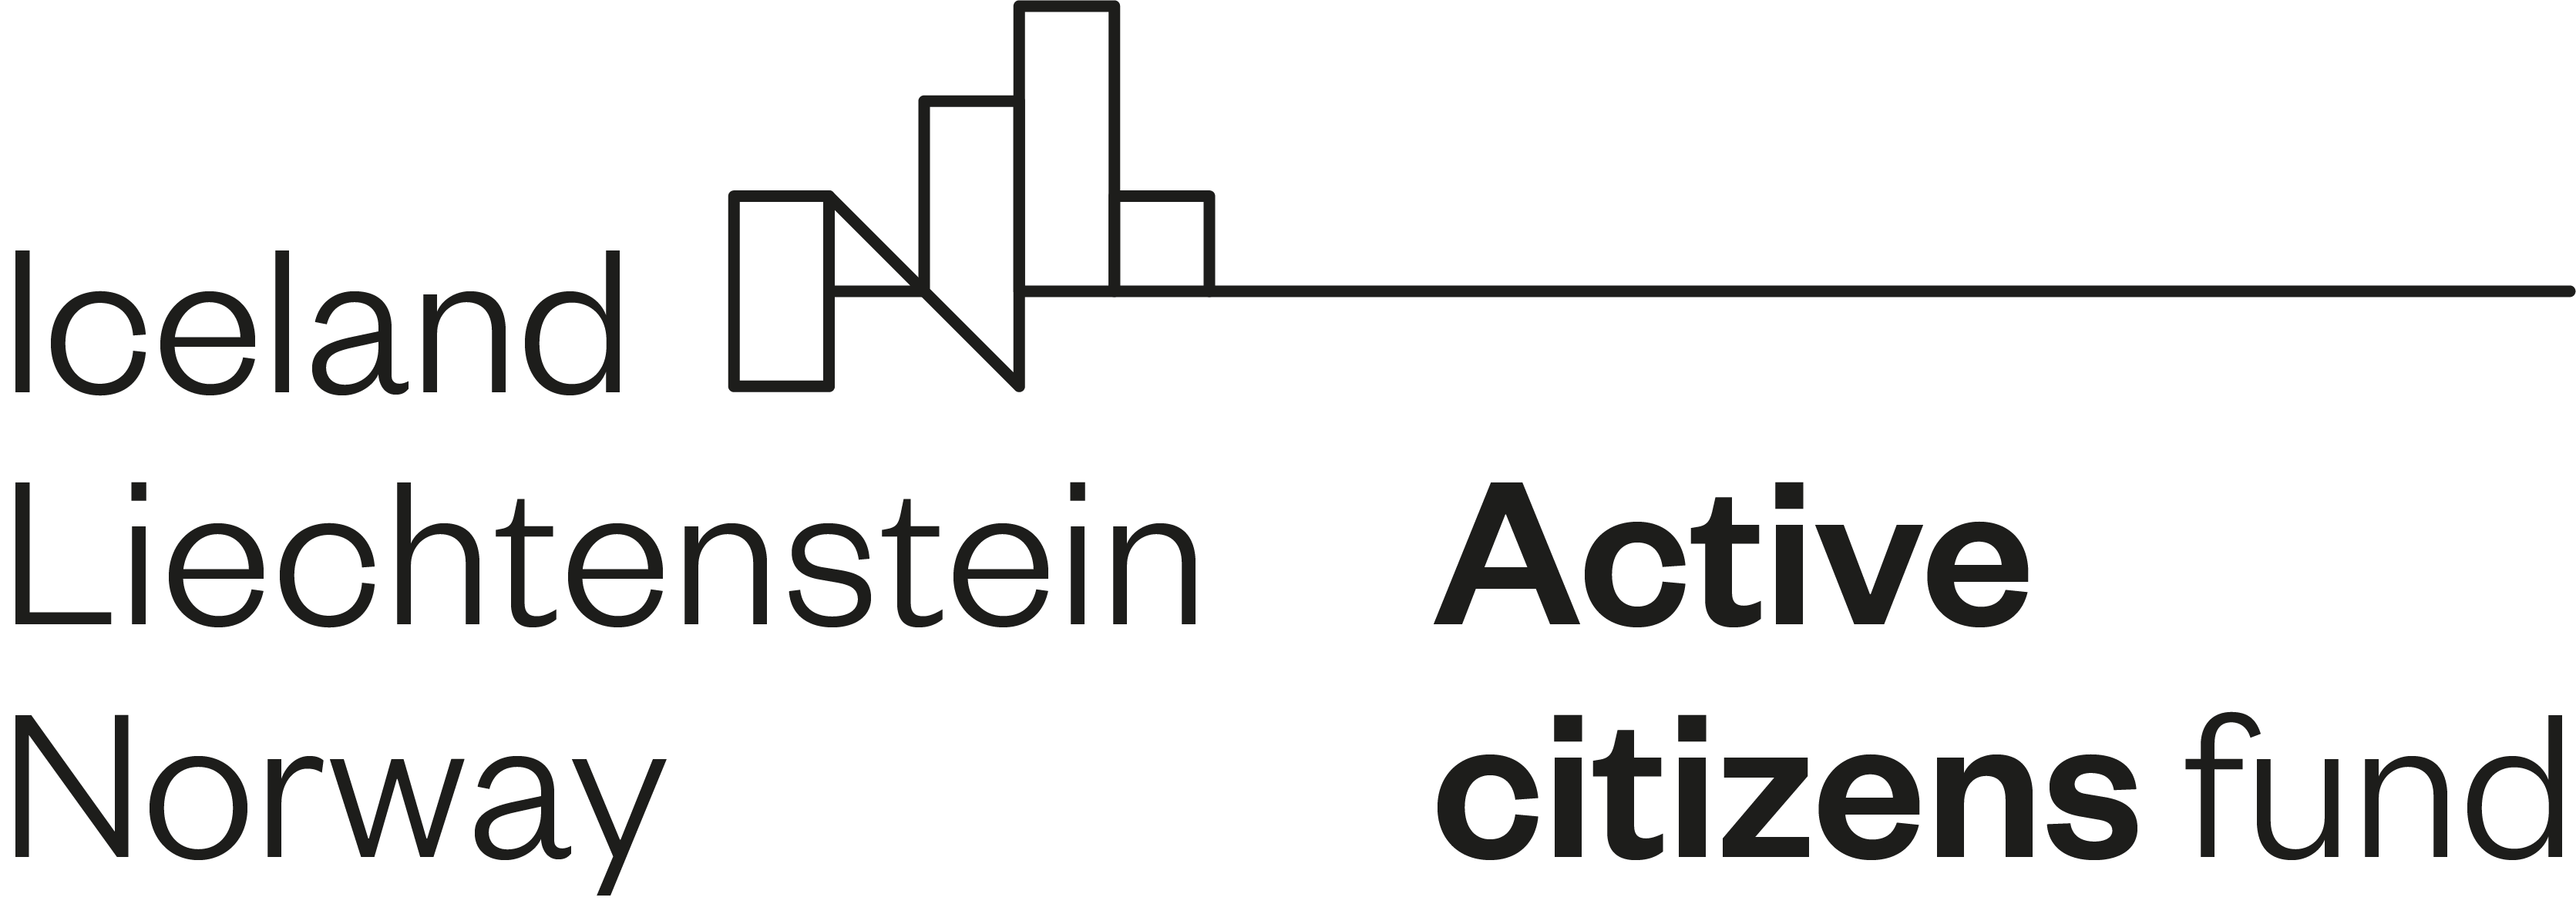 Active citizens fund4x